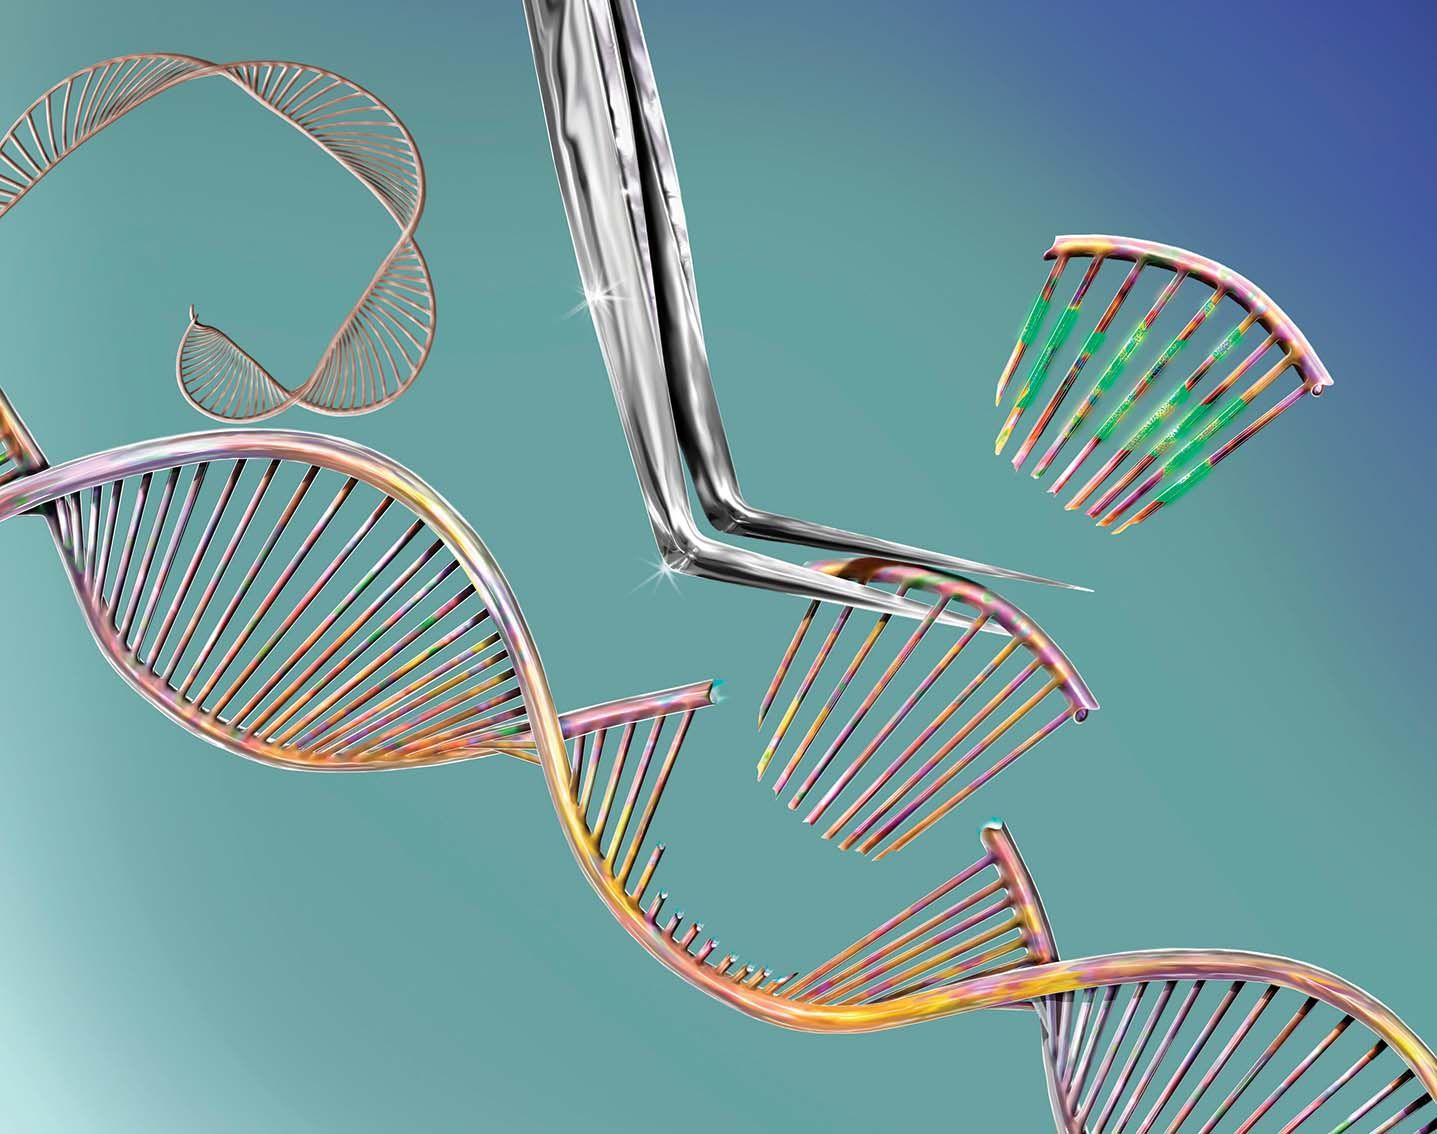 New, More Powerful Technique To Edit Genes Revealed : Here's the details